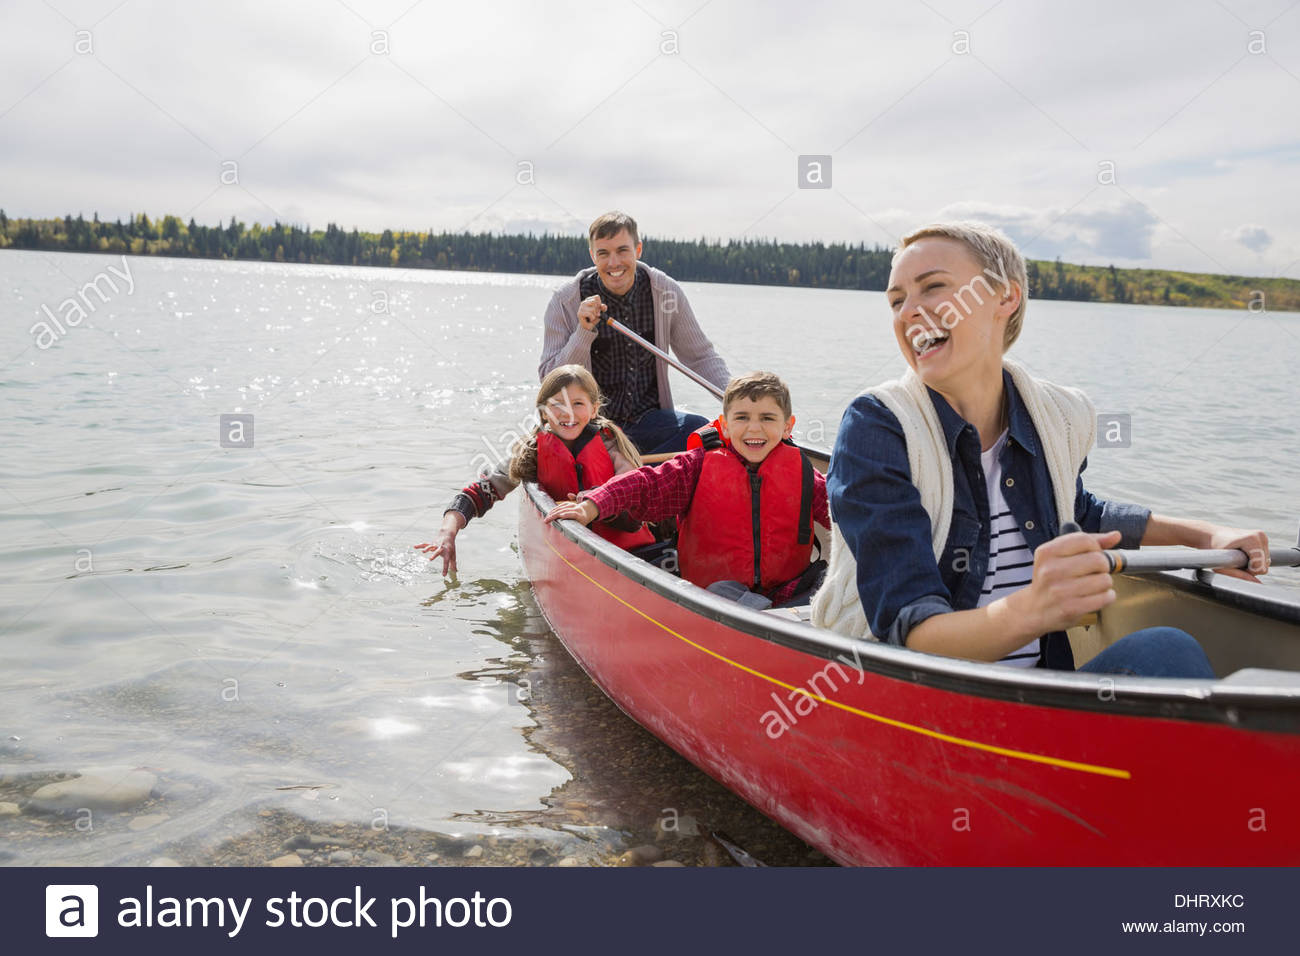 Happy family canoeing on lake - Stock Image